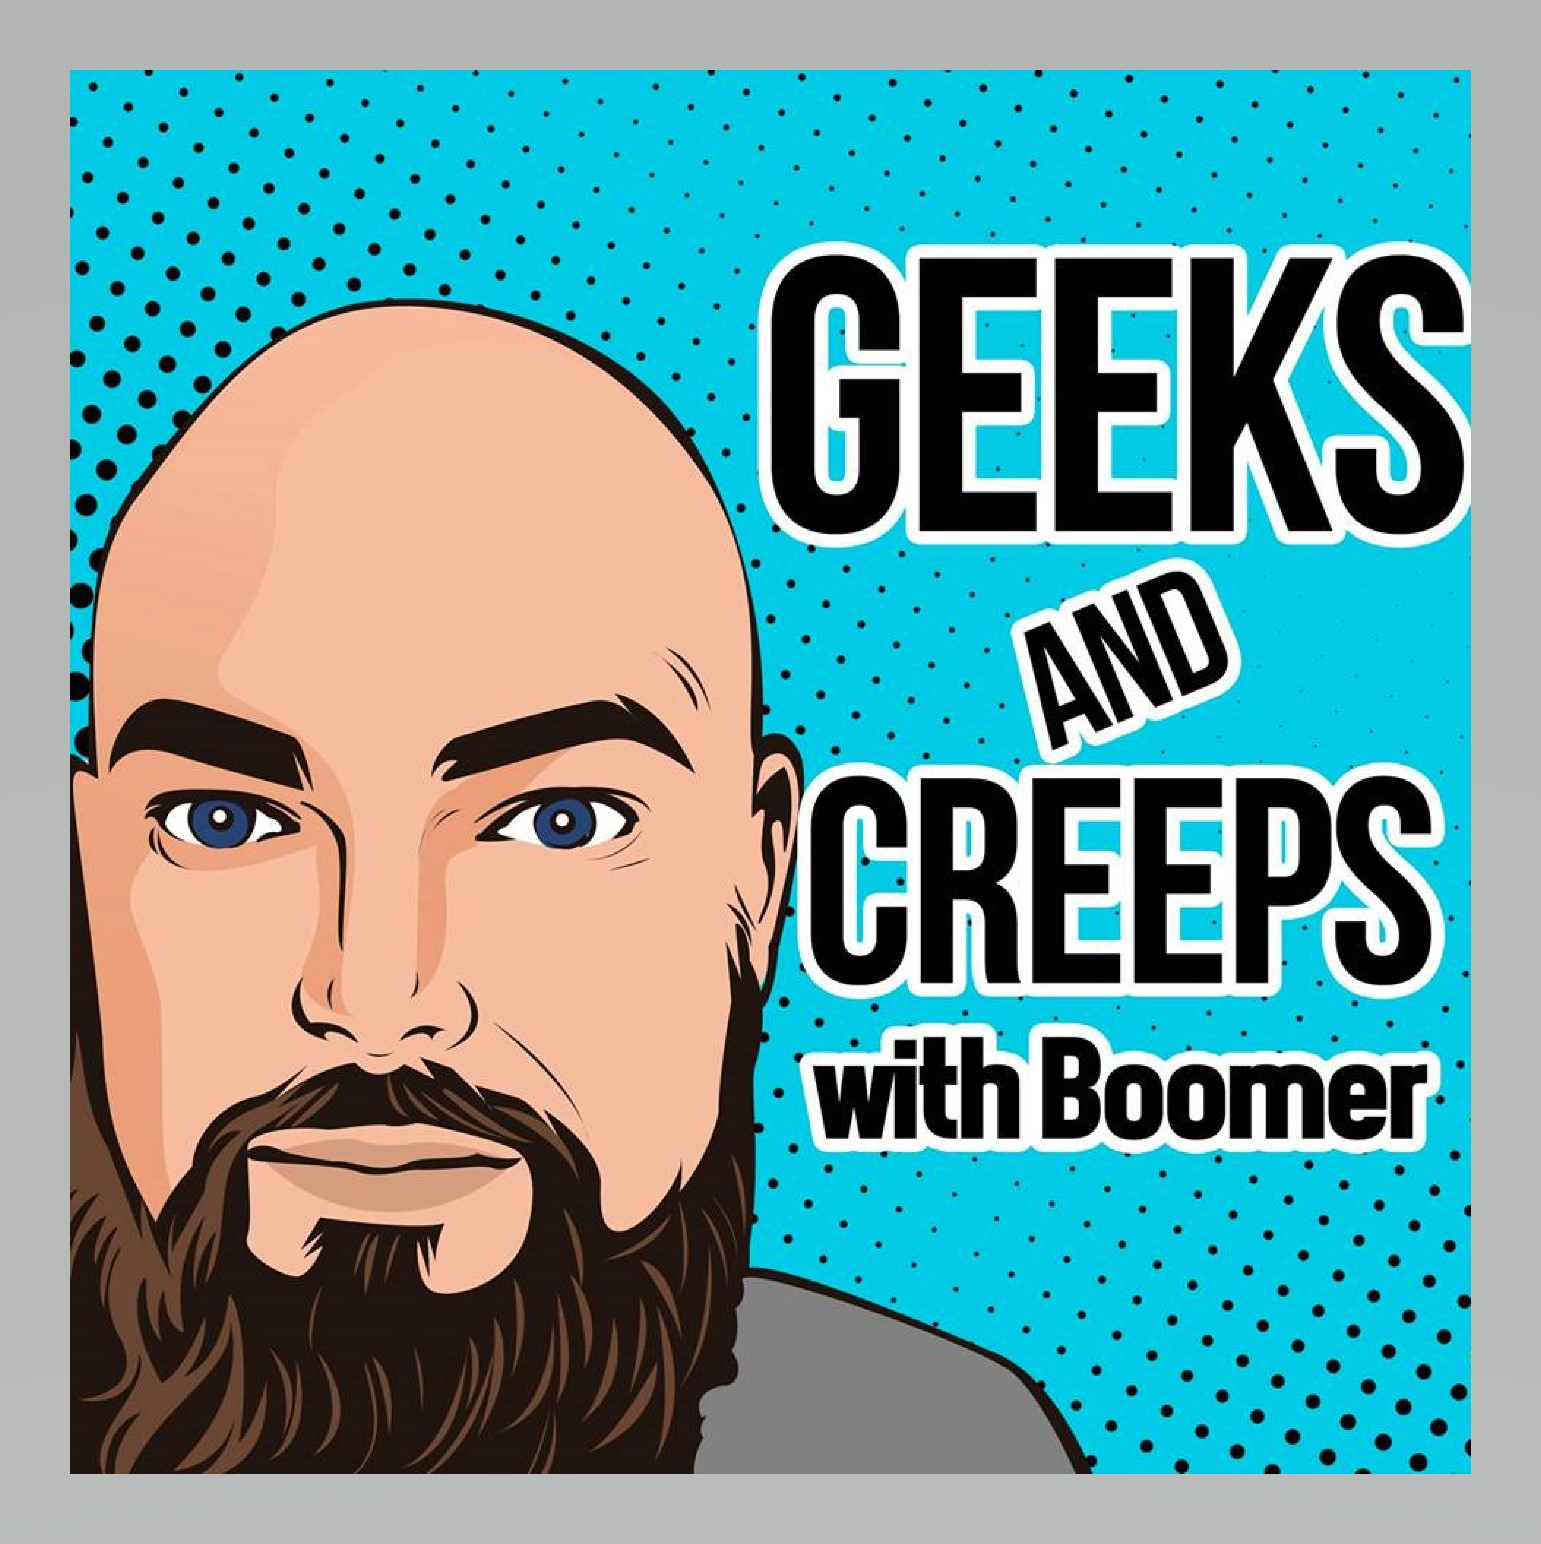 Geeks and Creeps Episode 6 show art